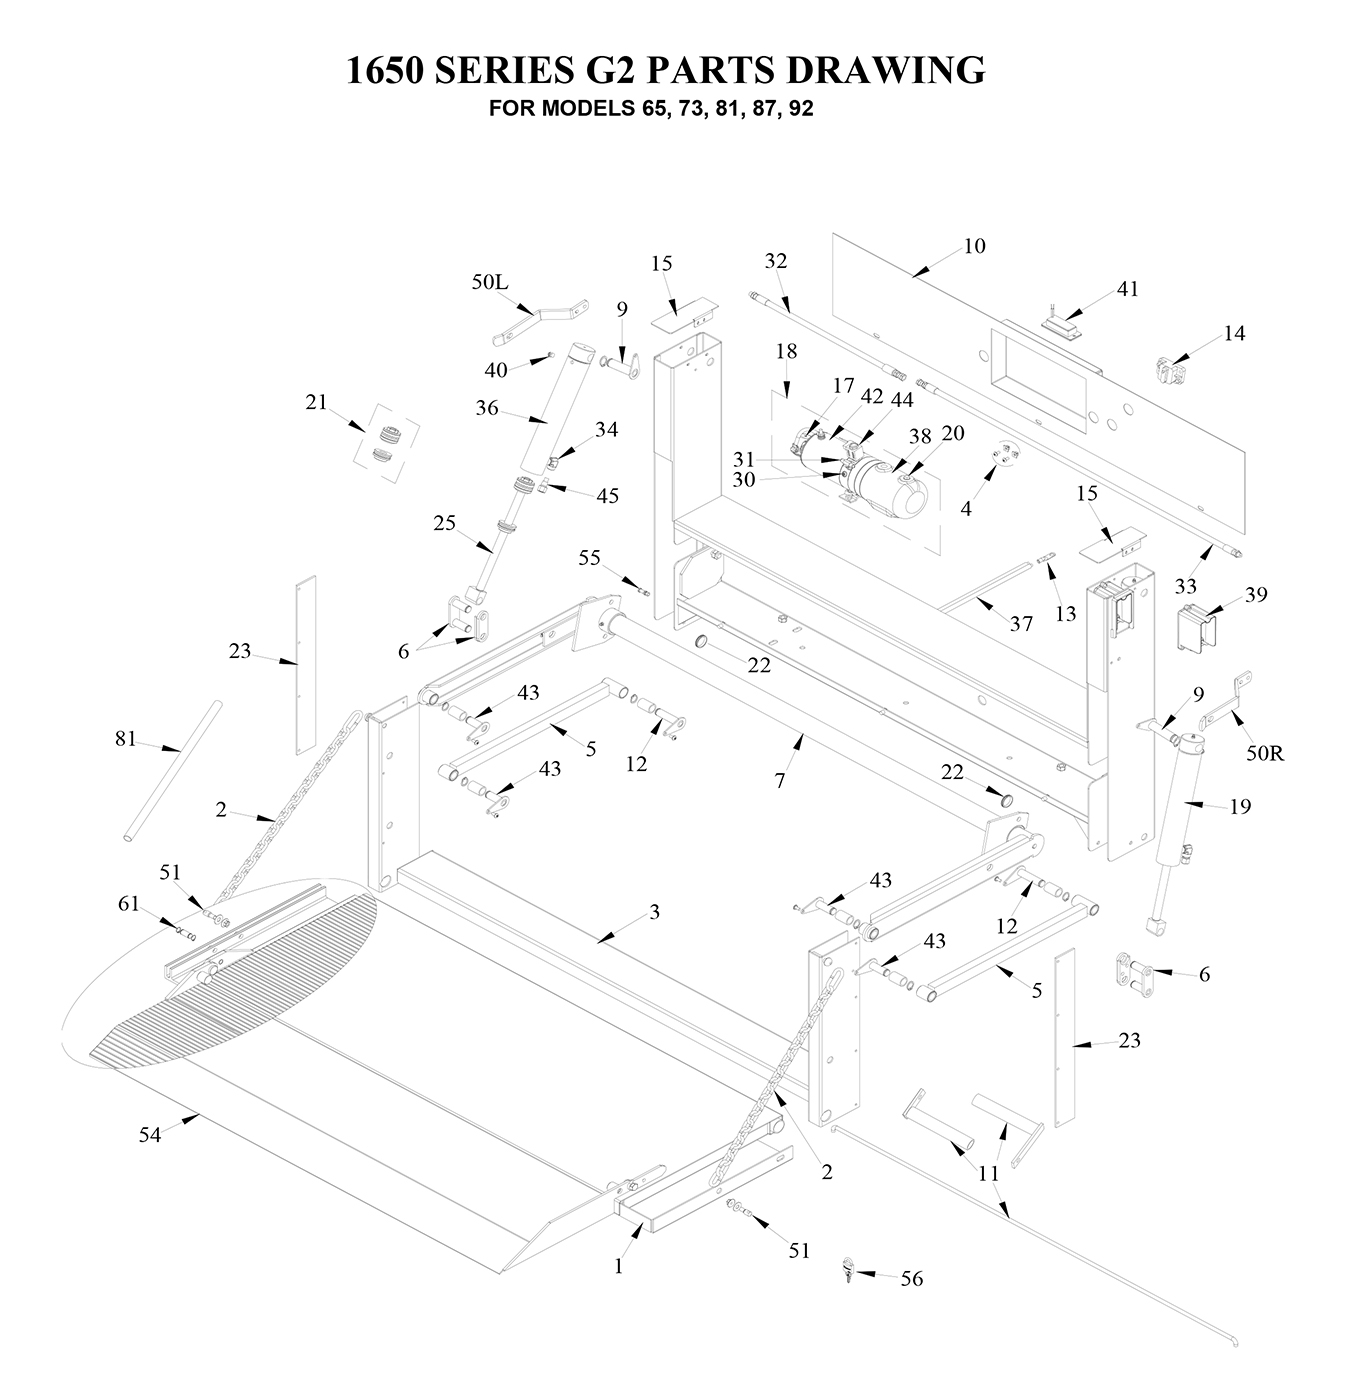 Tommy Gate G2 Series Diagram [Flatbed, Stake, Van & Dump Body]